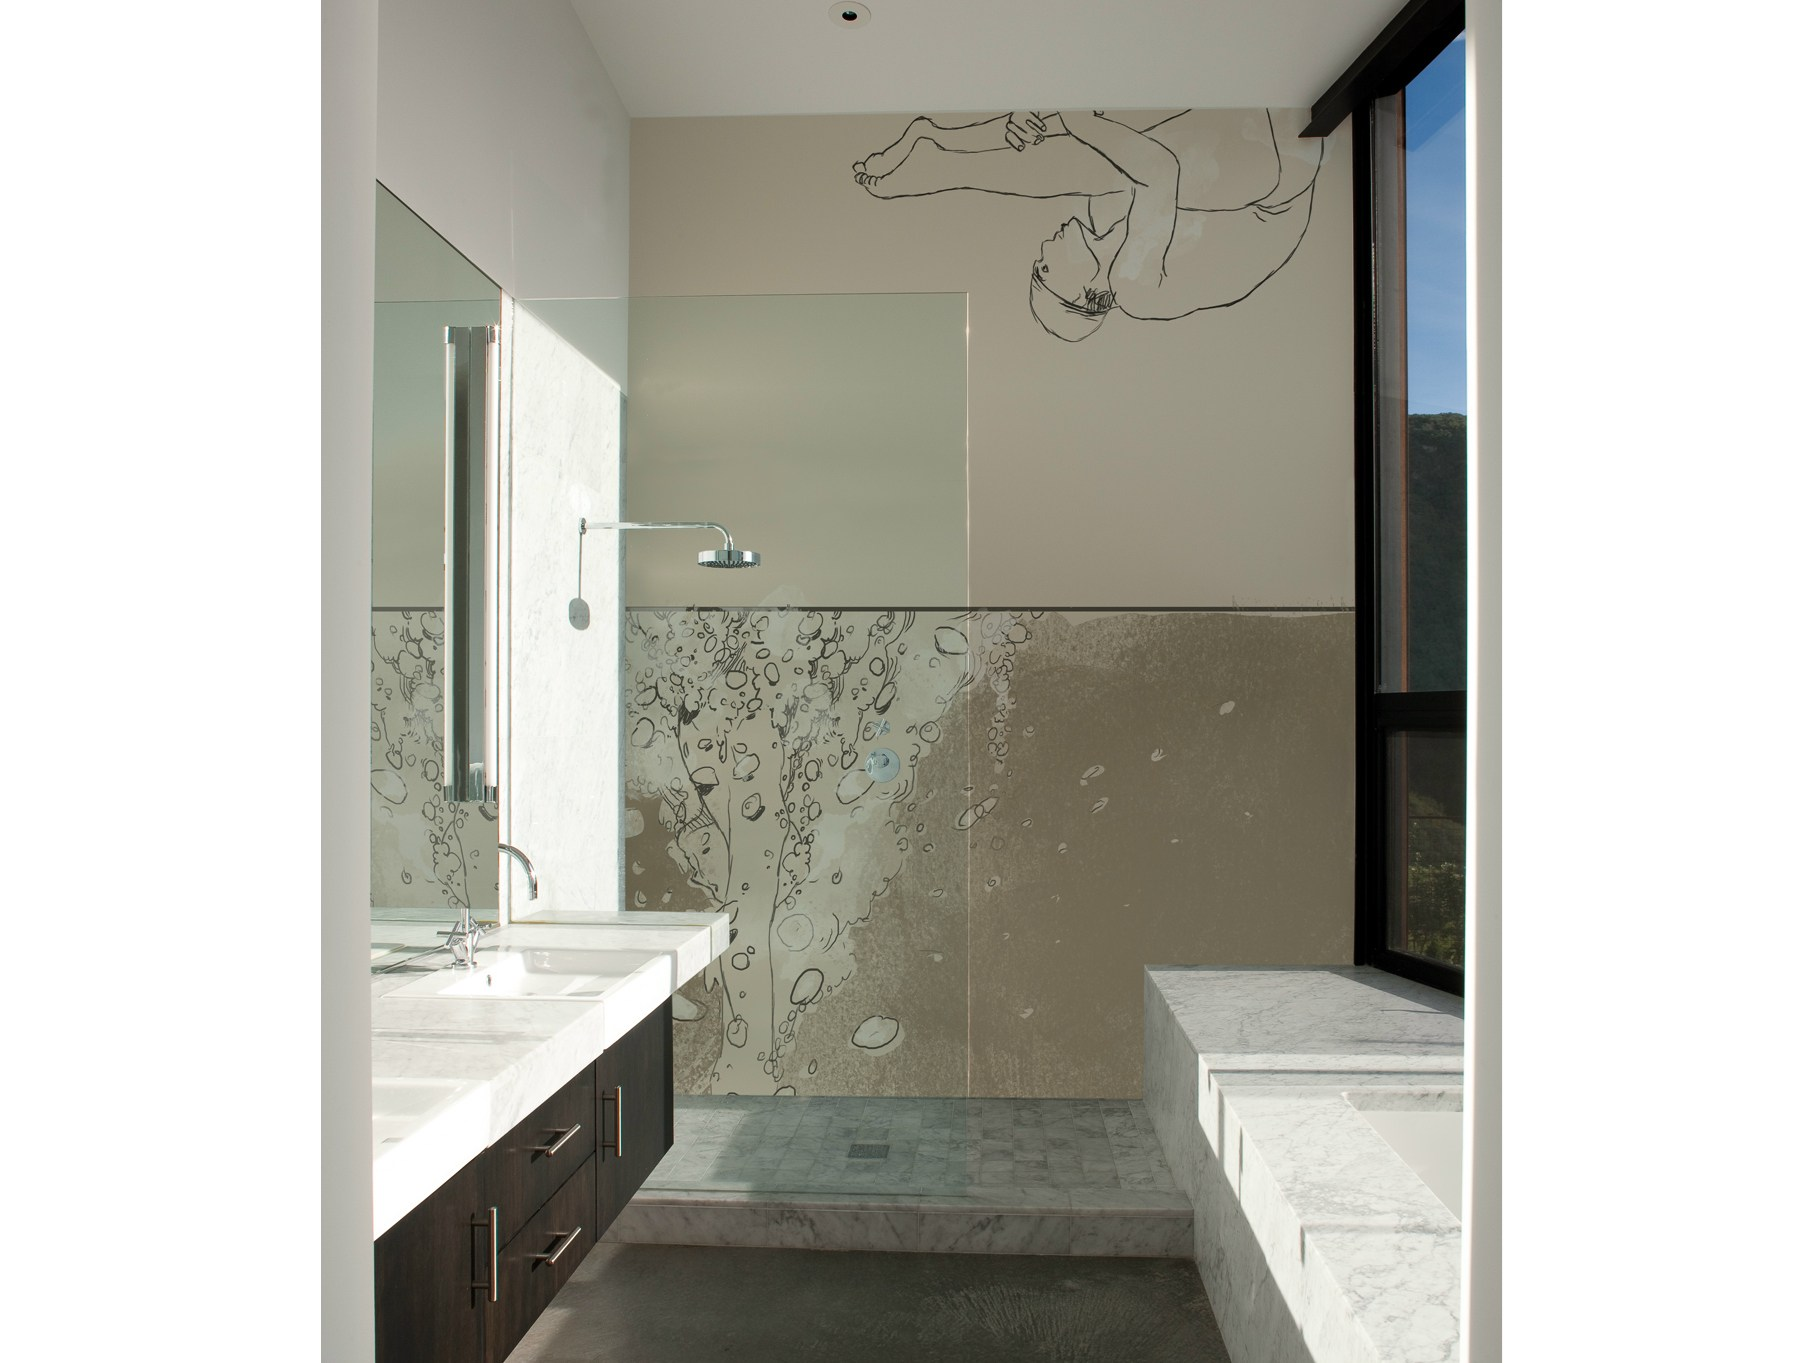 Carta da parati per bagno splash by wall dec design am - Carta da parati adesiva per bagno ...